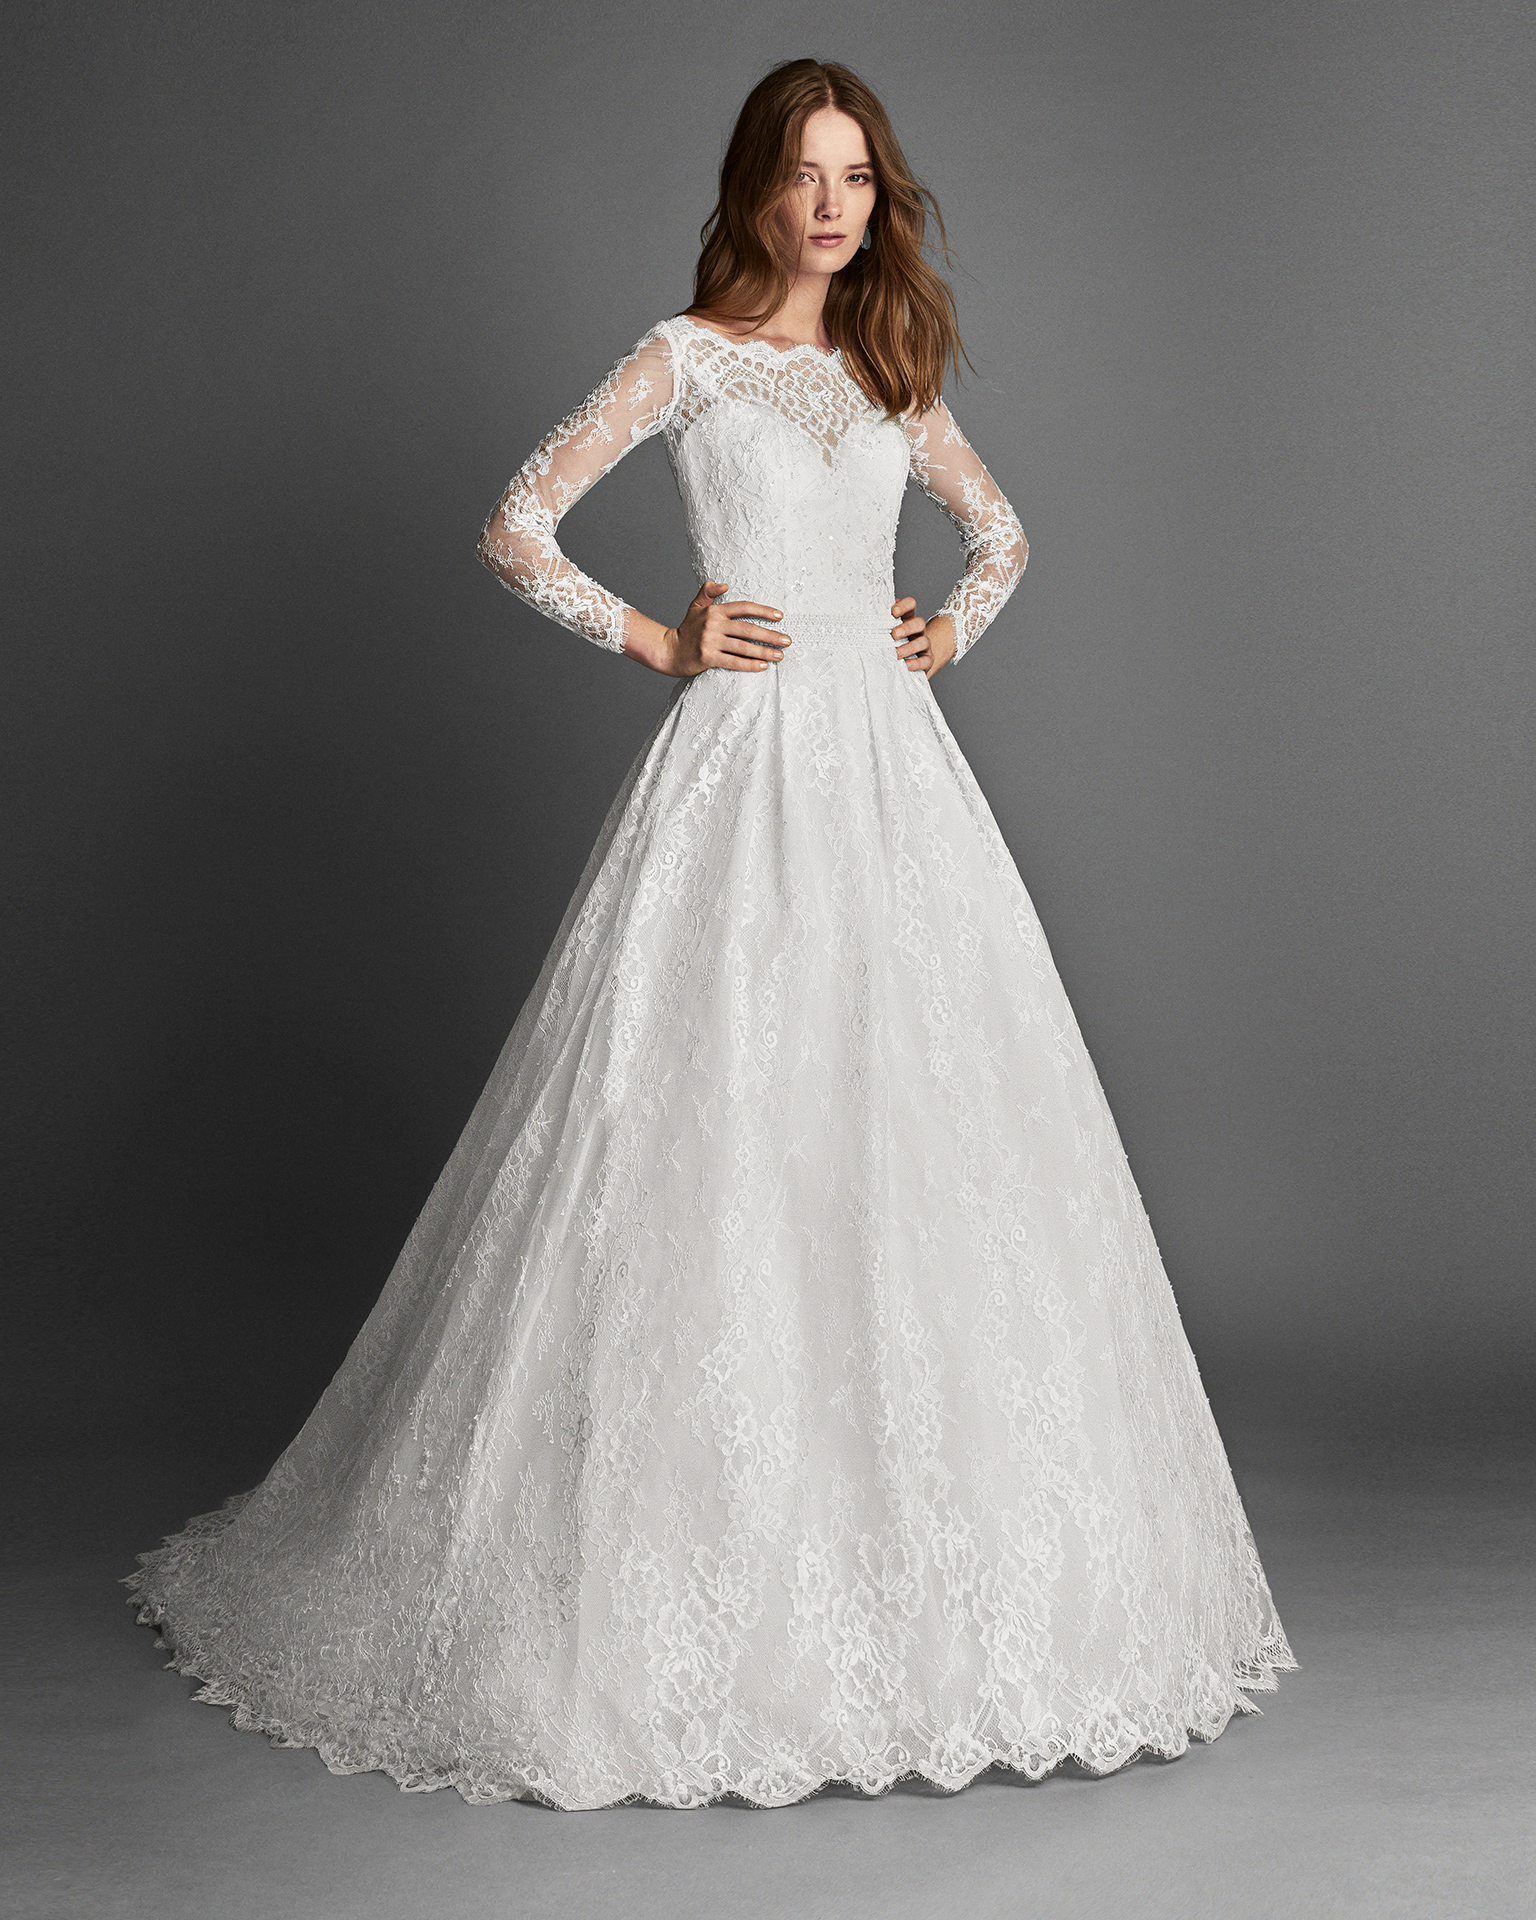 Princess-style beaded lace wedding dress with long sleeves, in natural.